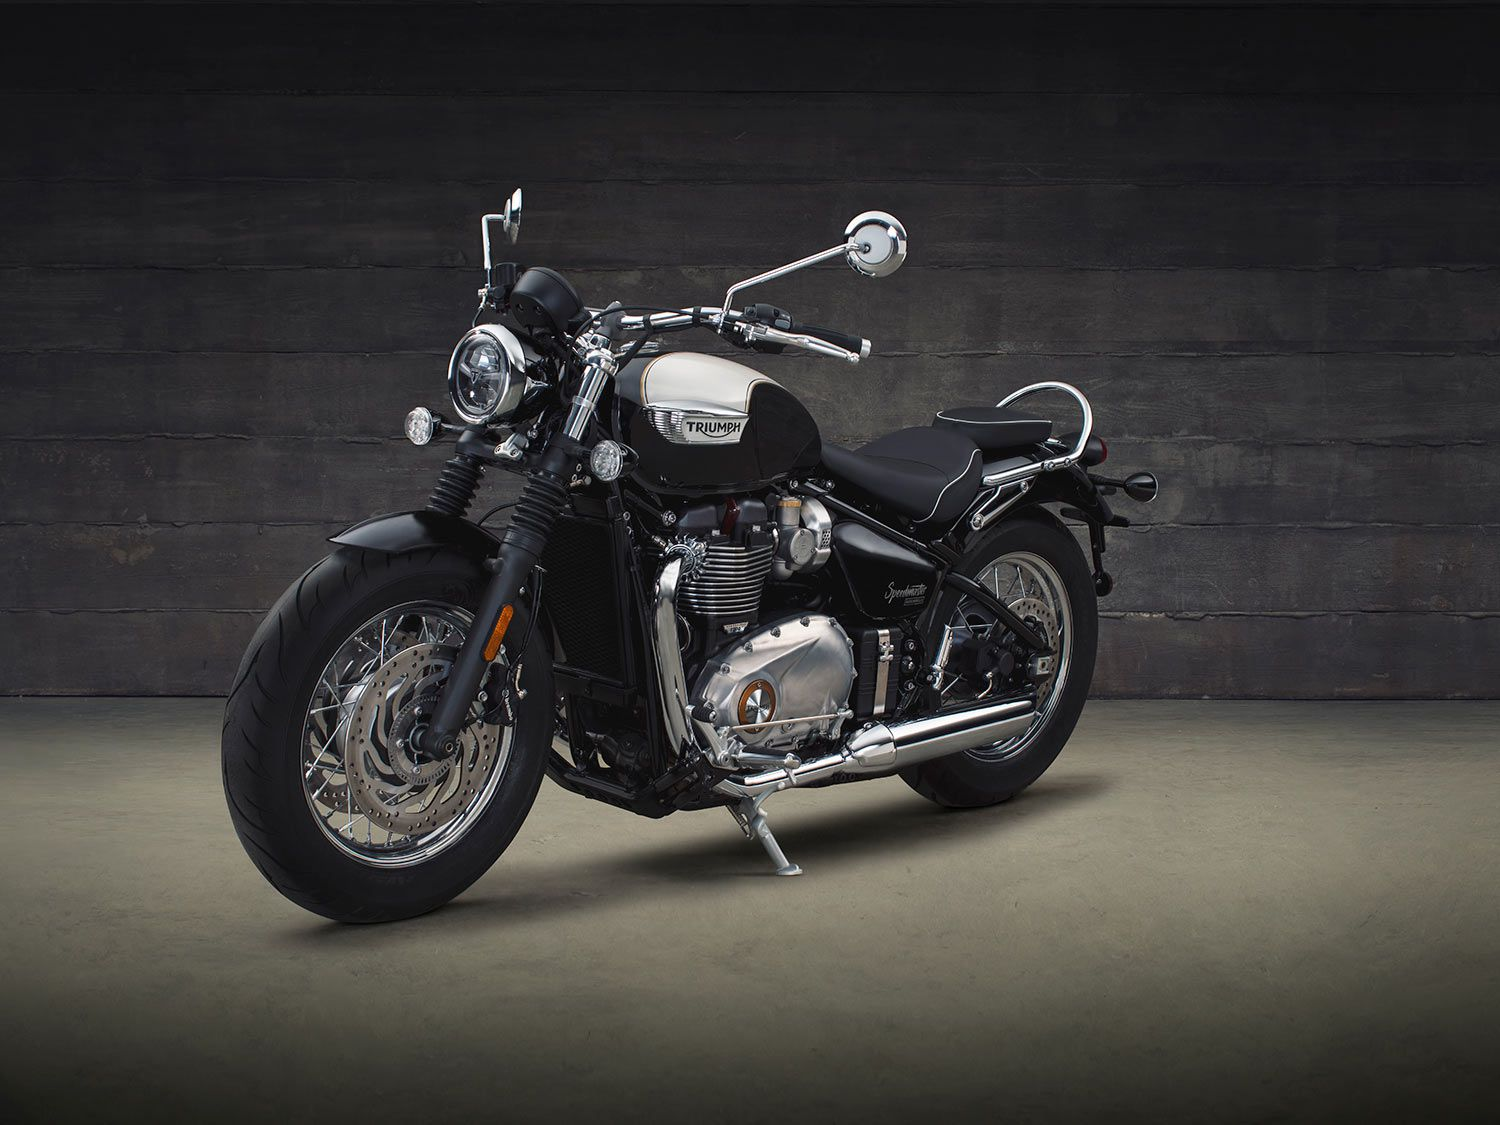 Triumph Motorcycles Begins Development Of Ebike | Cycle World